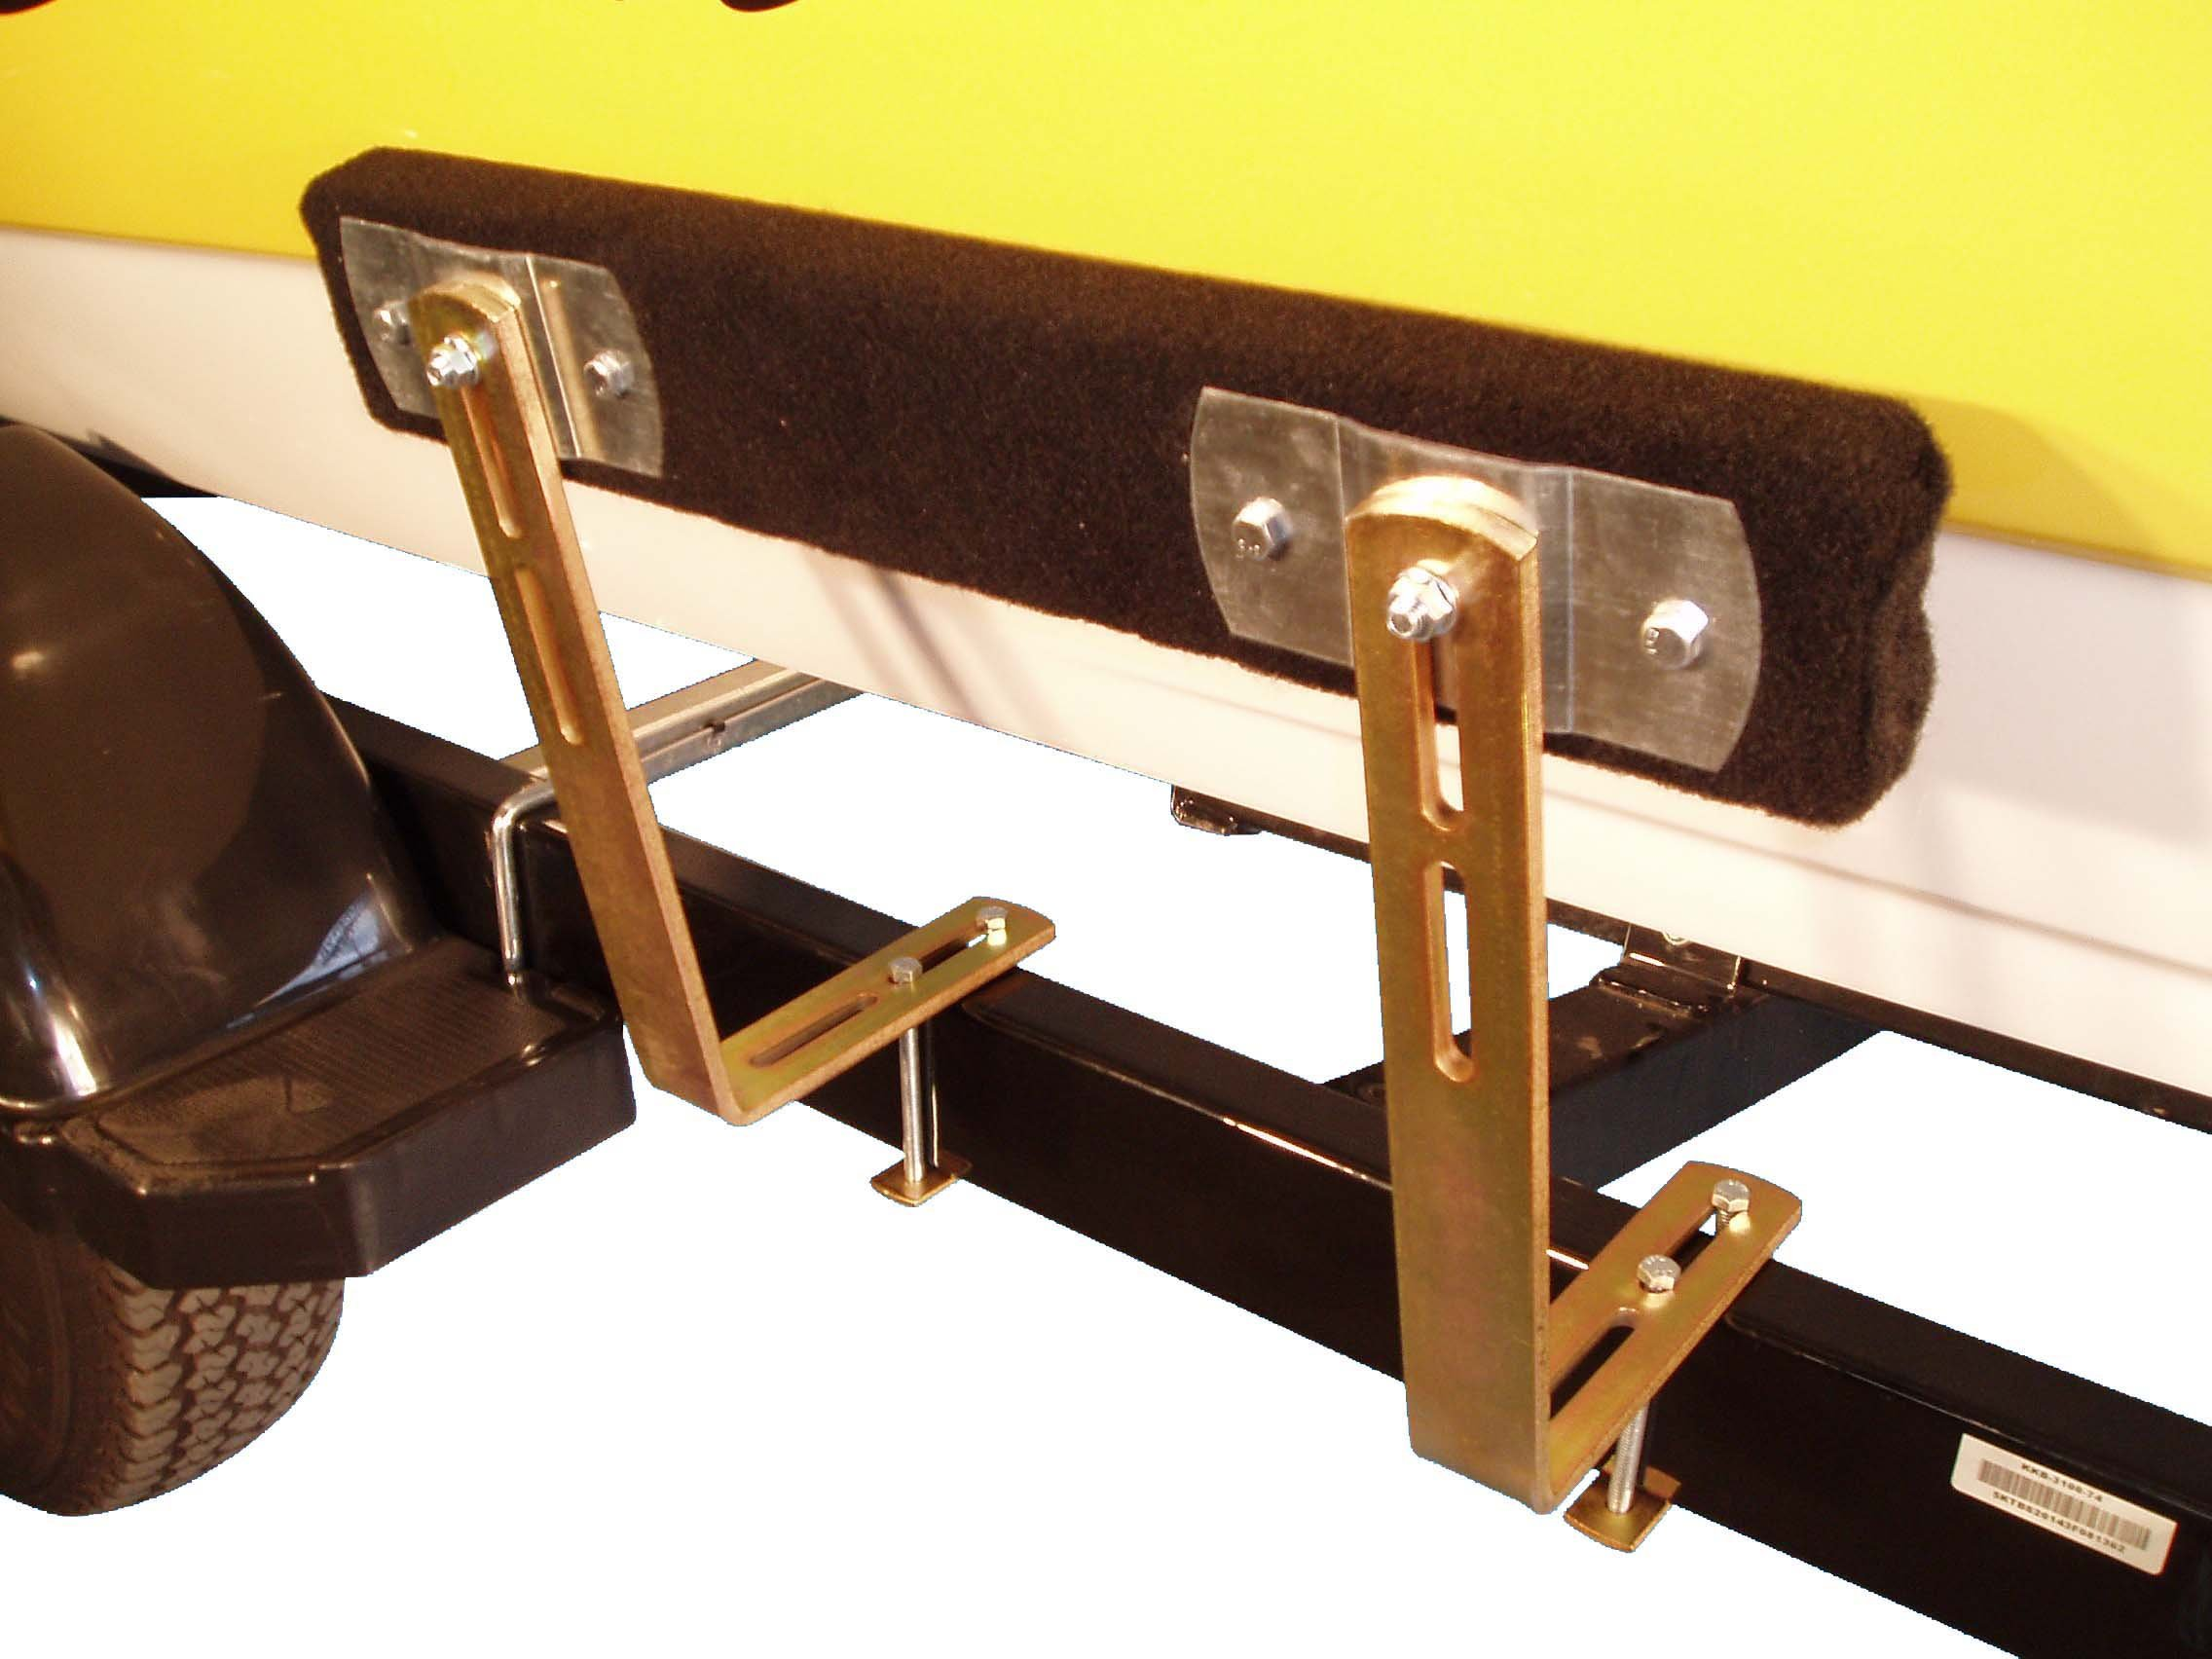 T-924; 2 Ft. Boat Trailer Bunk Guide-On, 1 Pair ( Zinc Plated Finish )